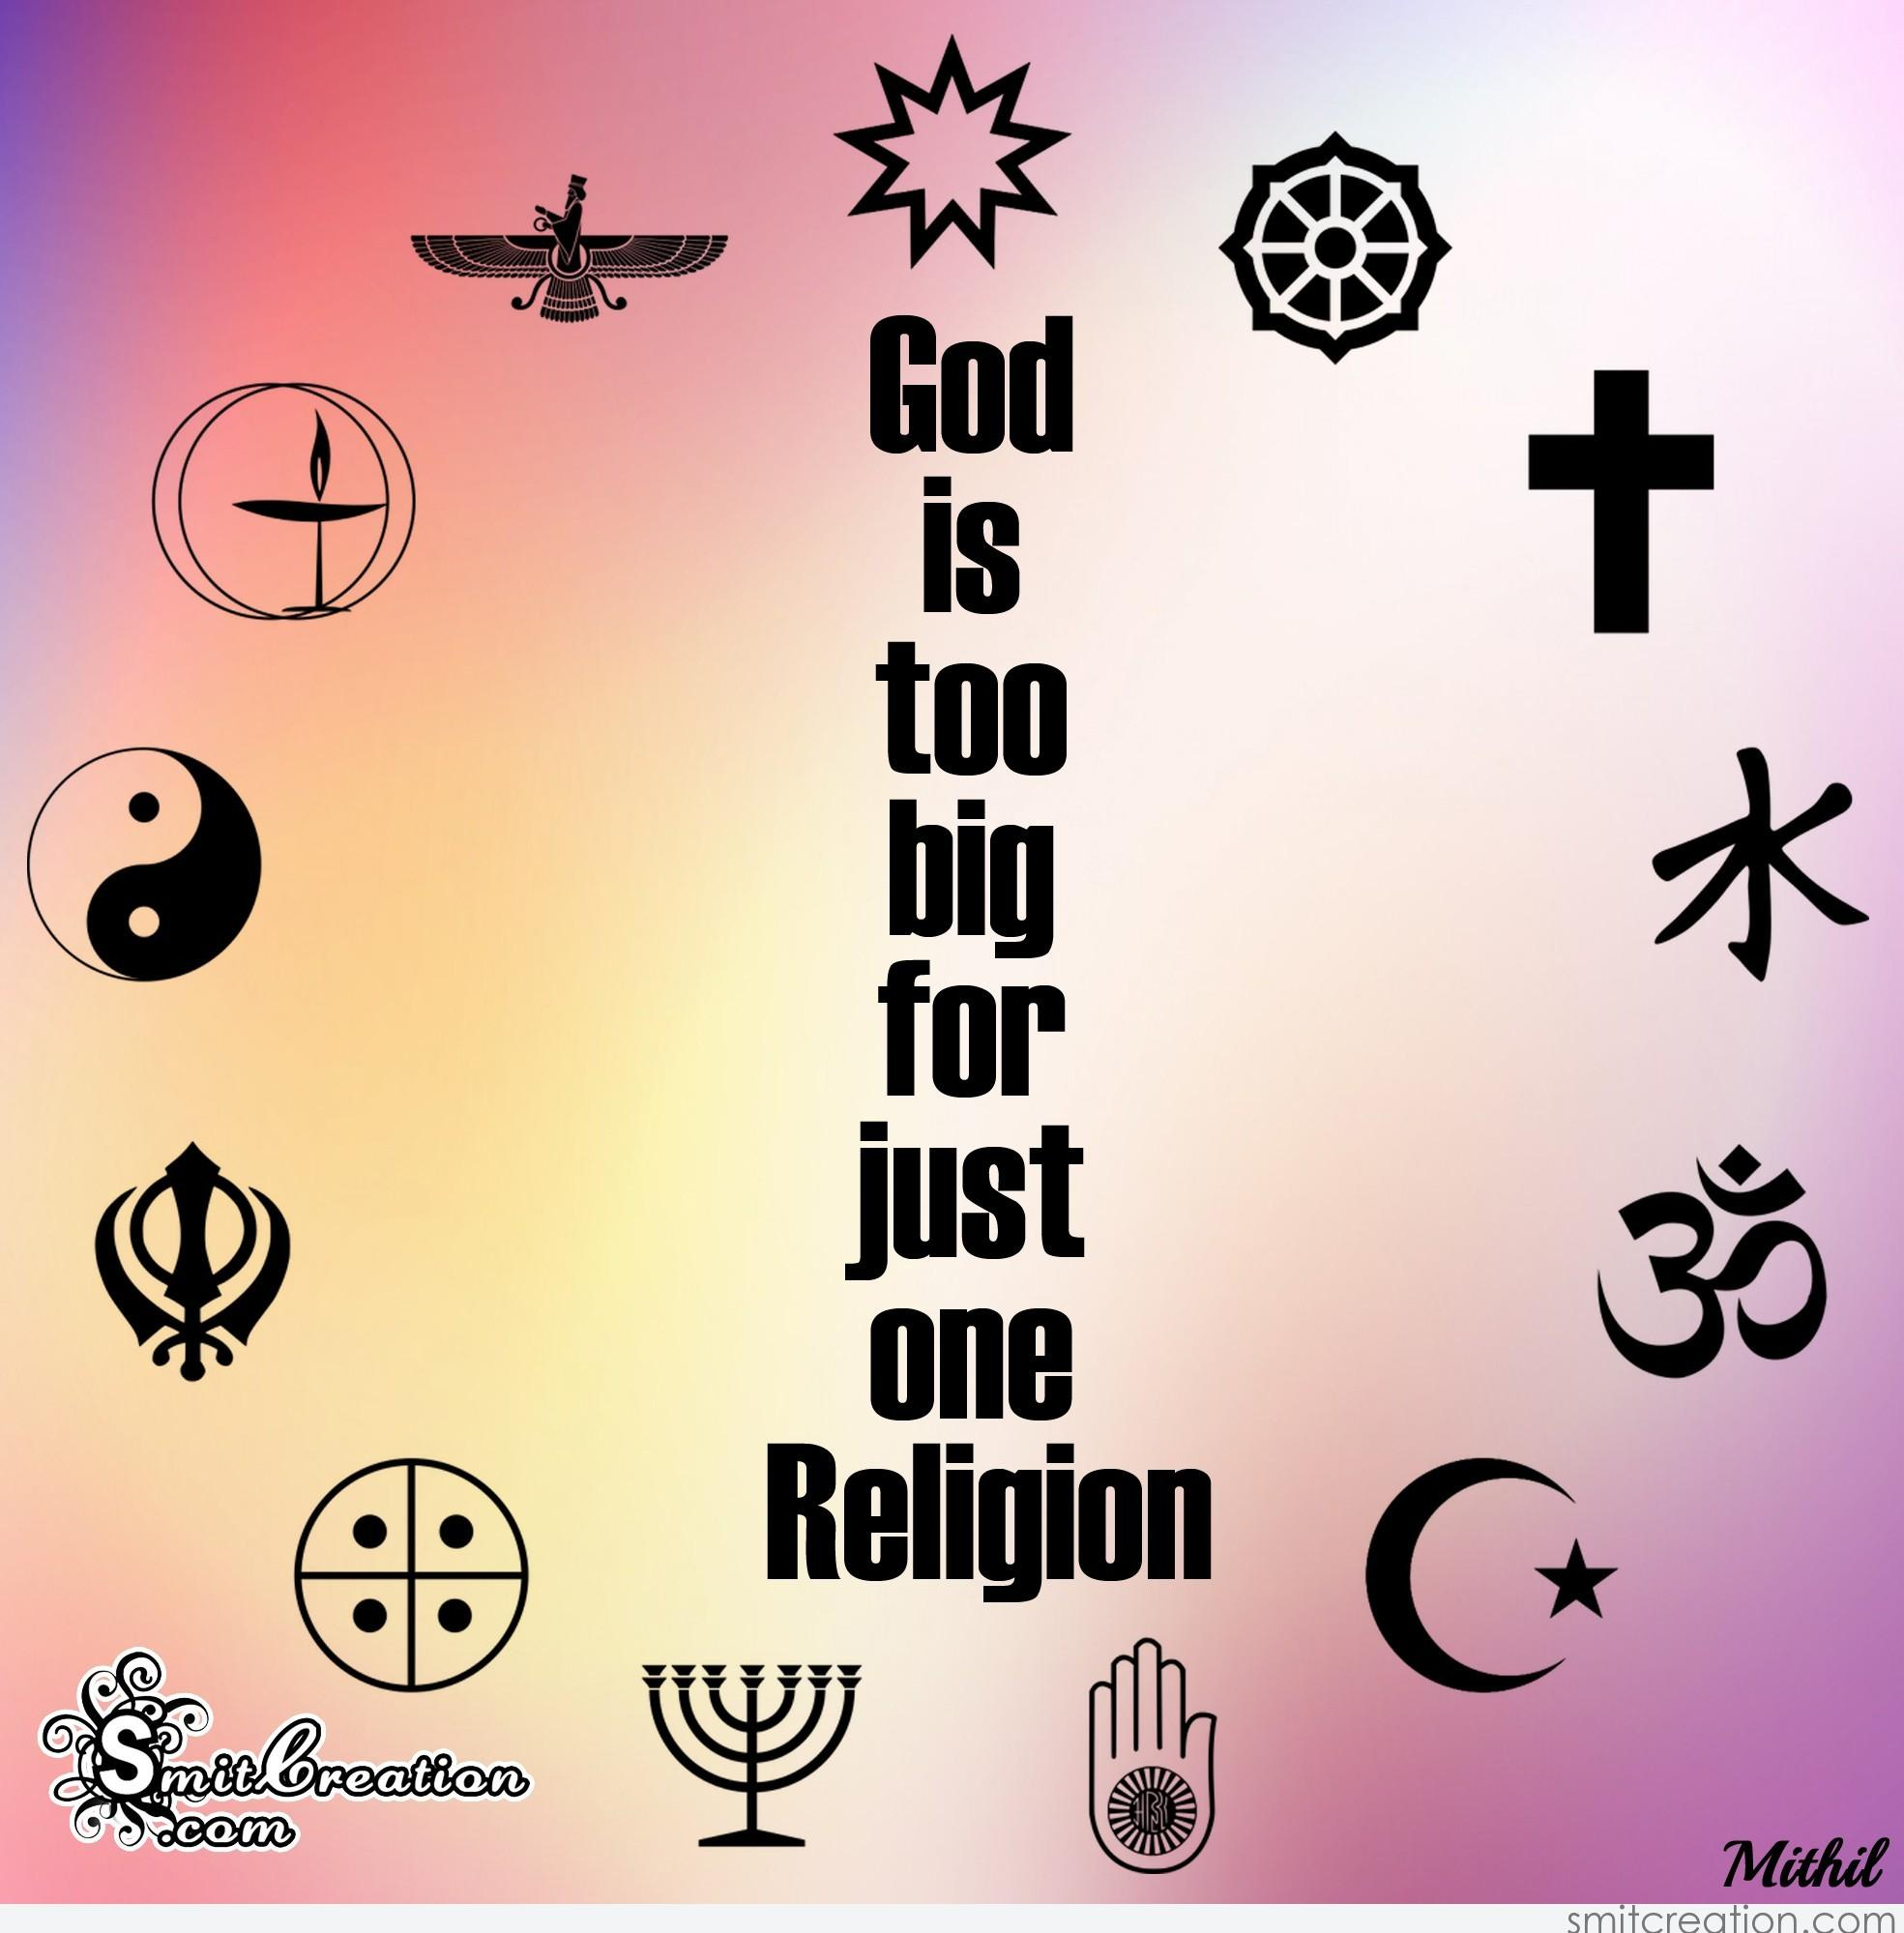 Love Quotes Wallpaper Download In Hindi God Is Too Big For Just One Religion Smitcreation Com